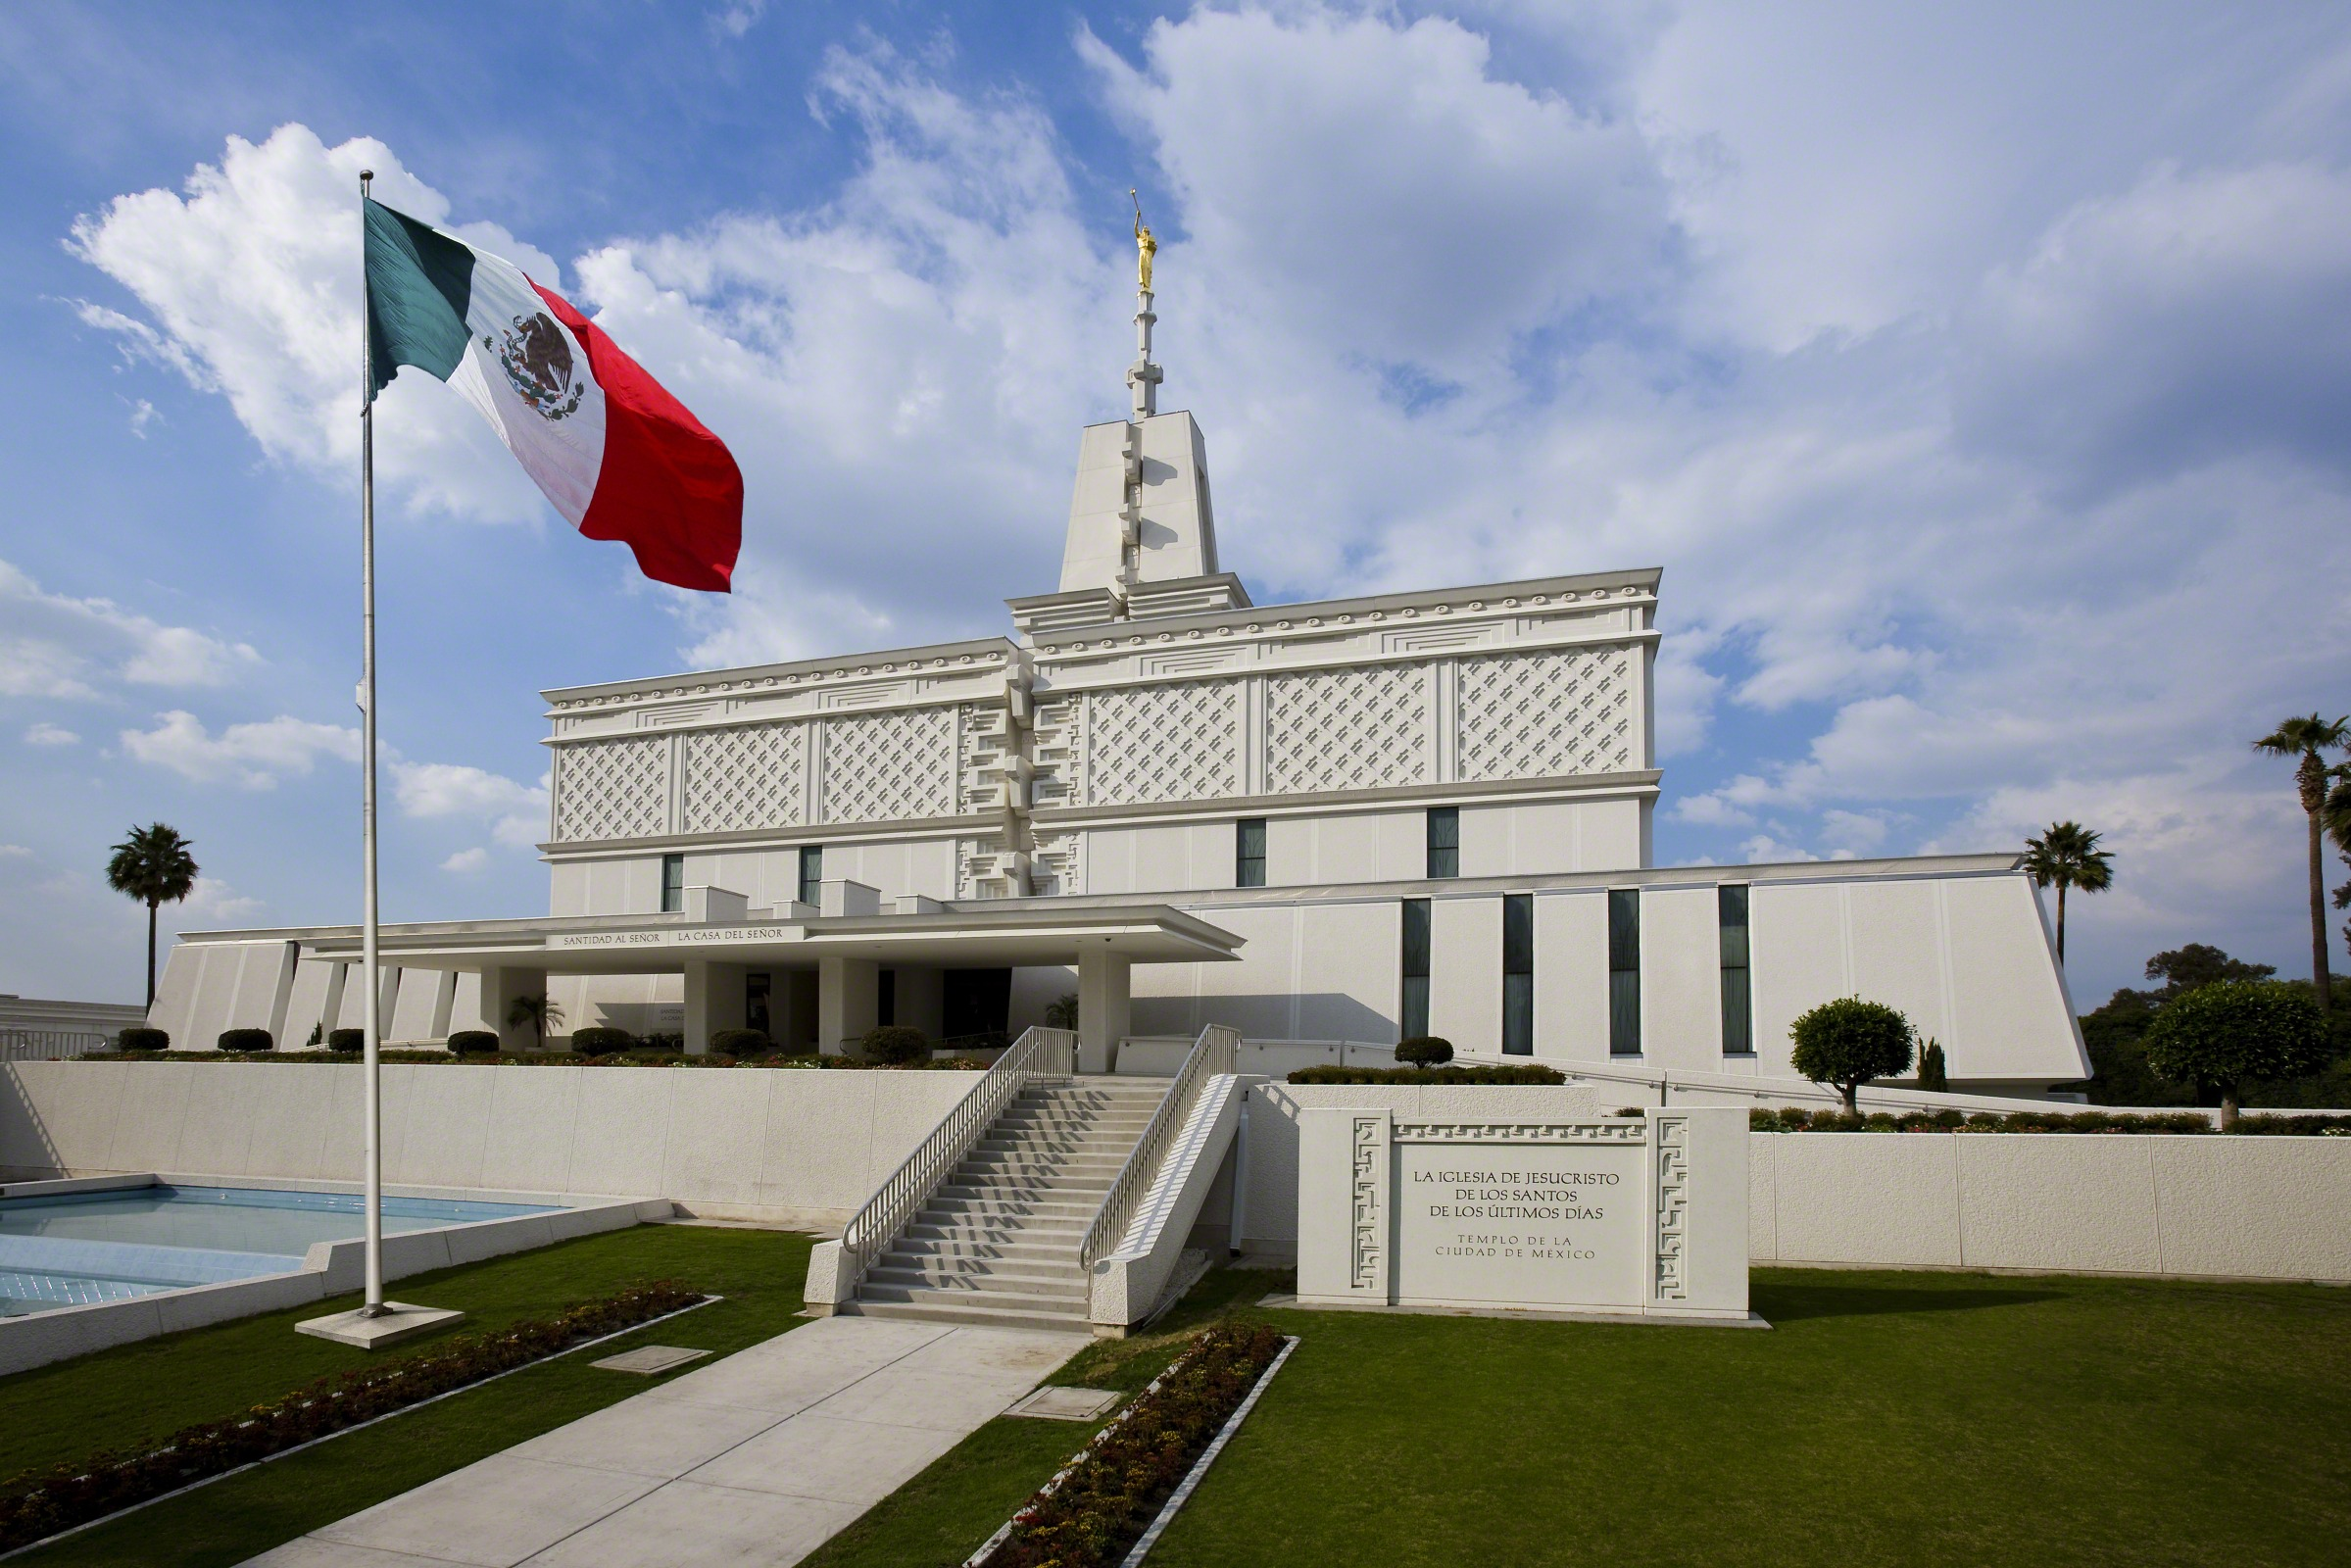 Mormon Temple Mexico City